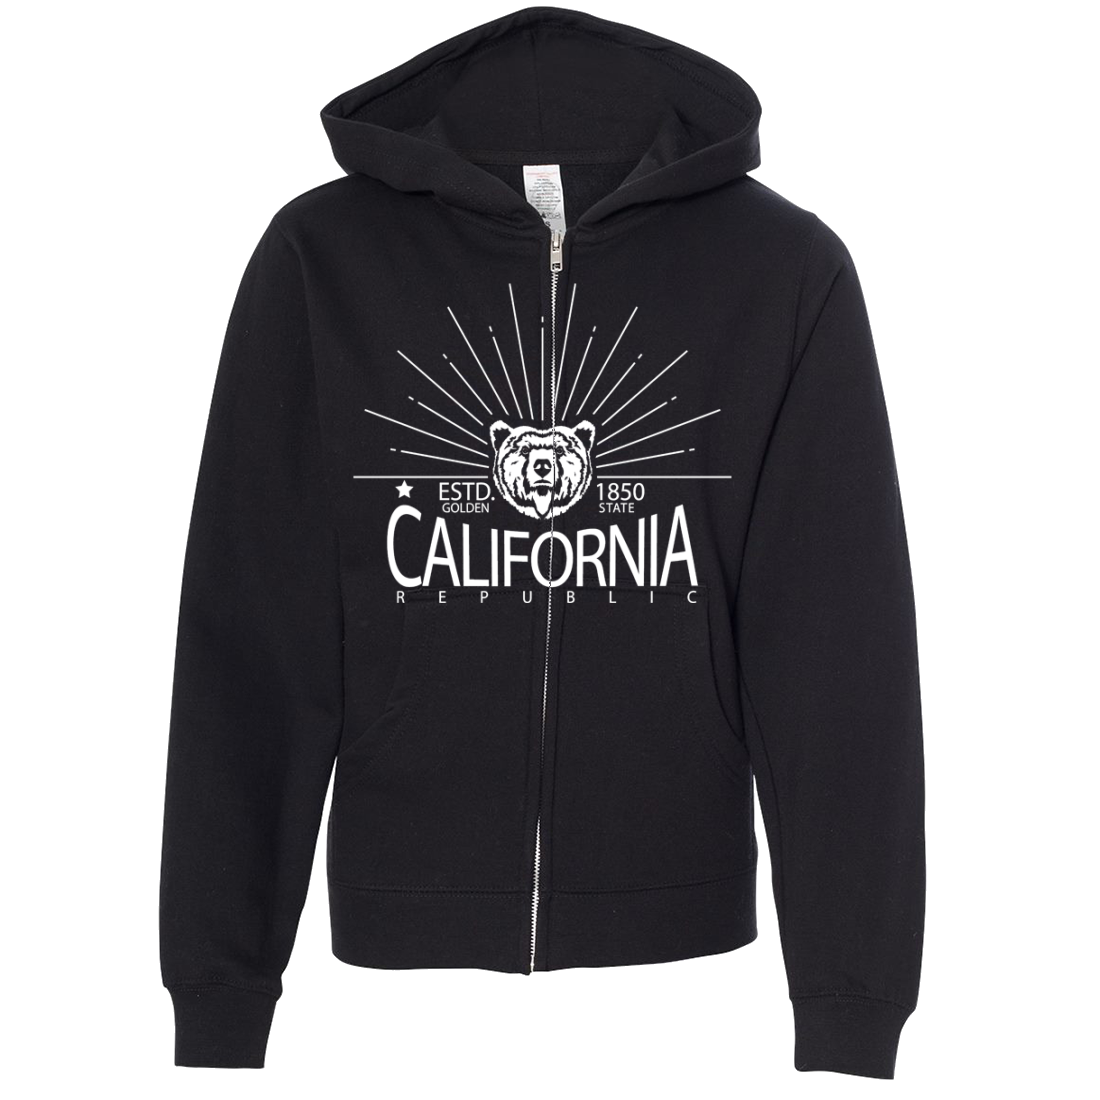 California Golden State White Print Premium Youth Zip-Up Hoodie